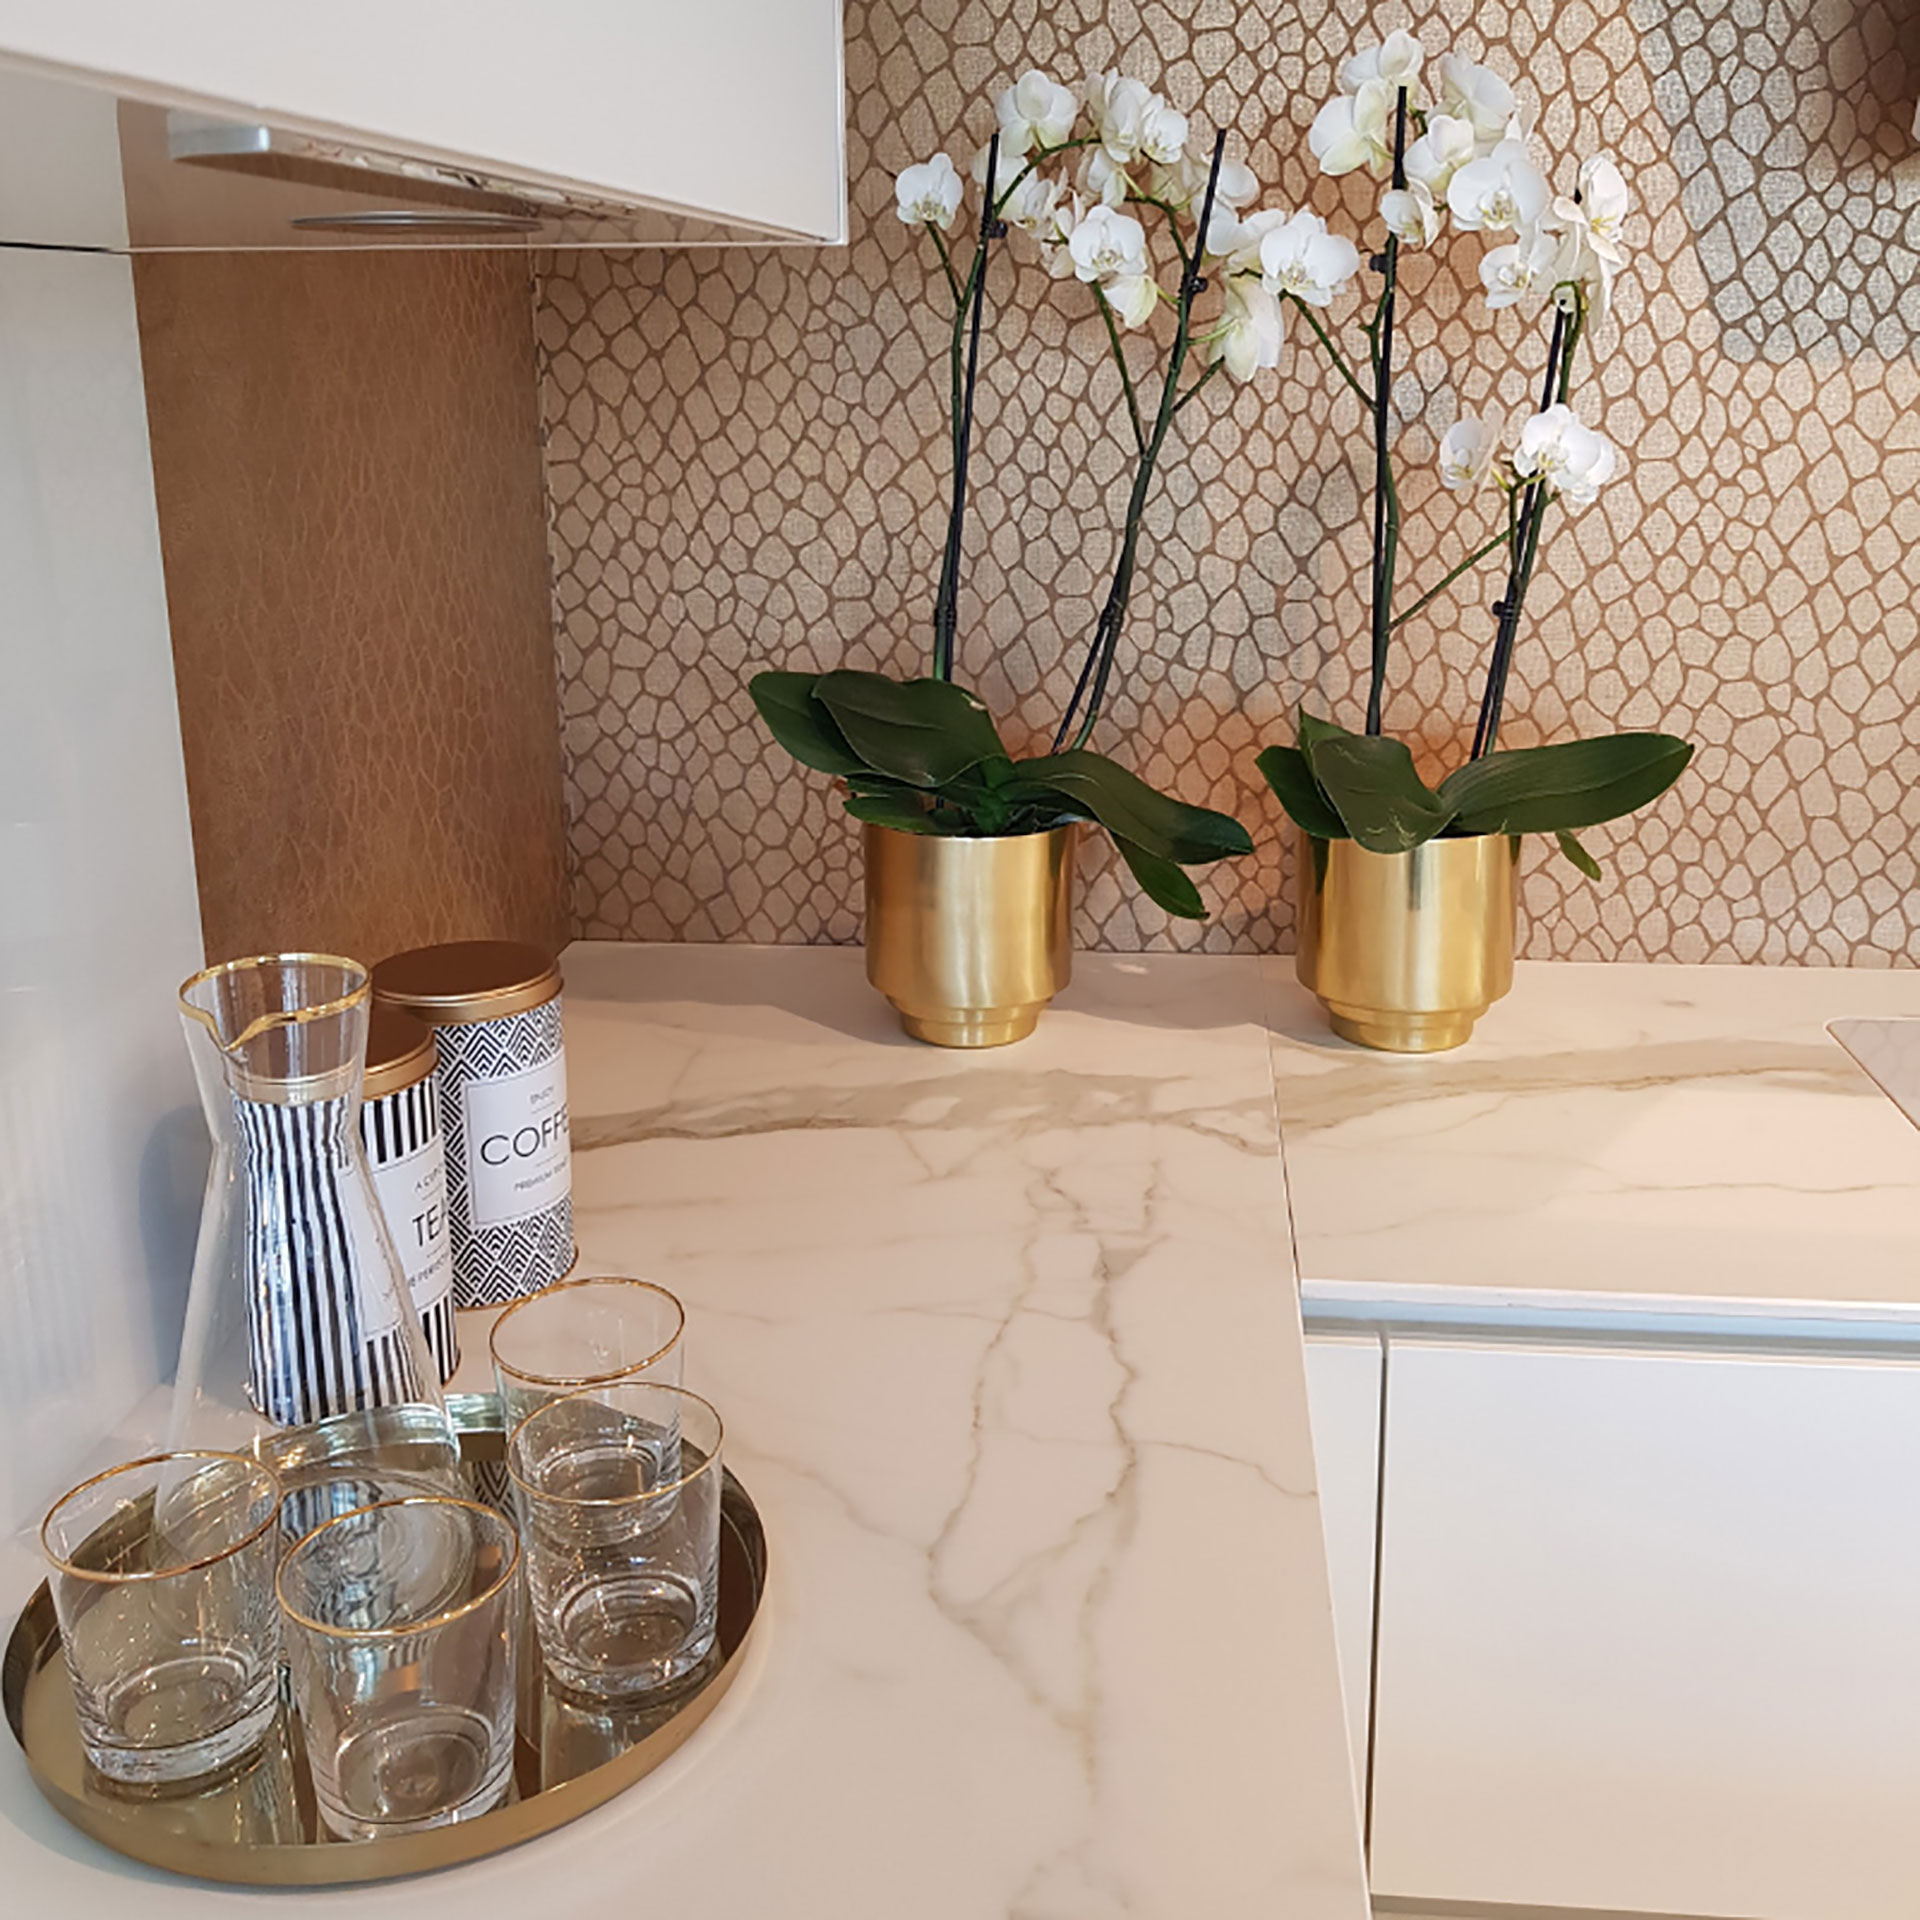 SapienStone kitchen countertops: the benefits of the best